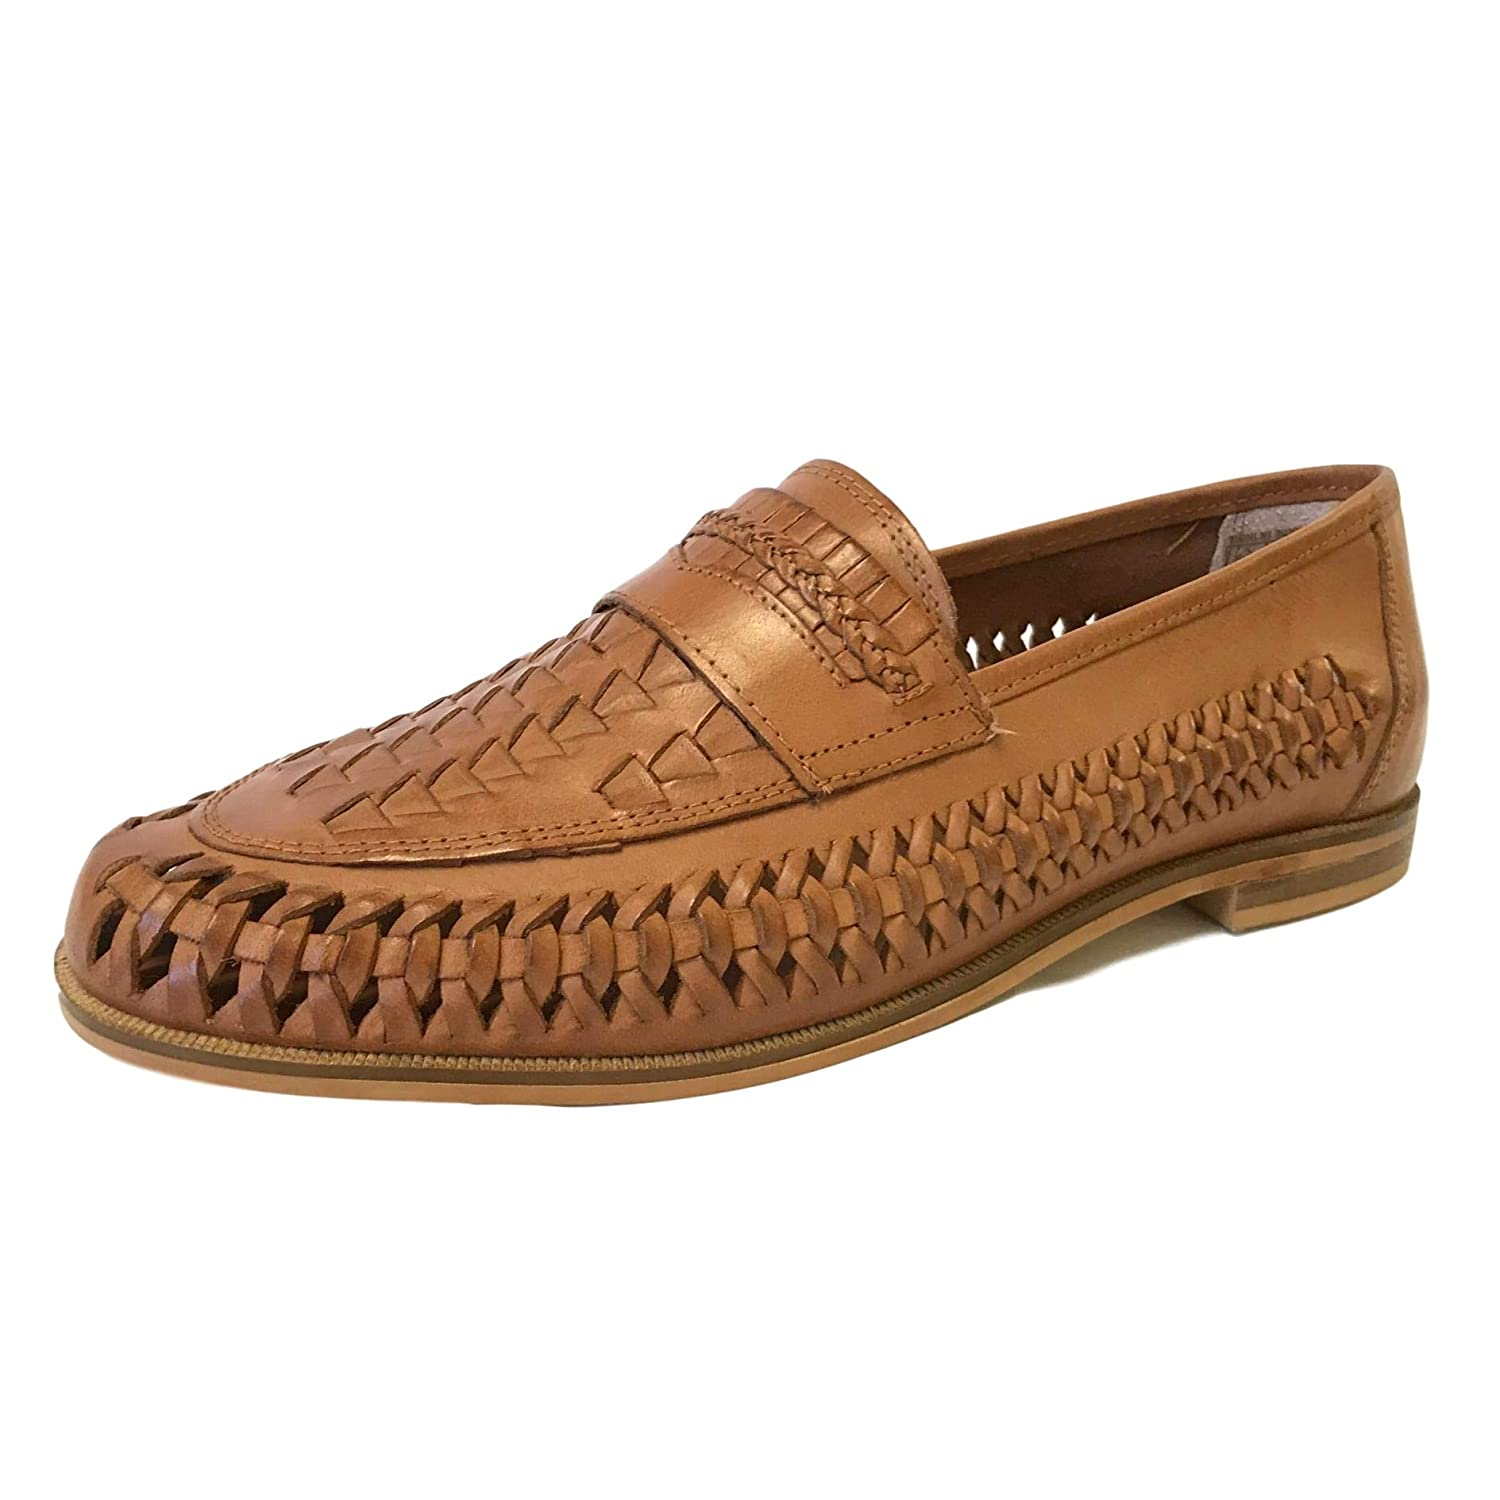 1bd1107c55 Mens Bow Weave Slip On Tan Real Leather Boat Shoes Summer Casual Office  Loafers Size 6-12 (UK 8   EU 42)  Amazon.co.uk  Shoes   Bags